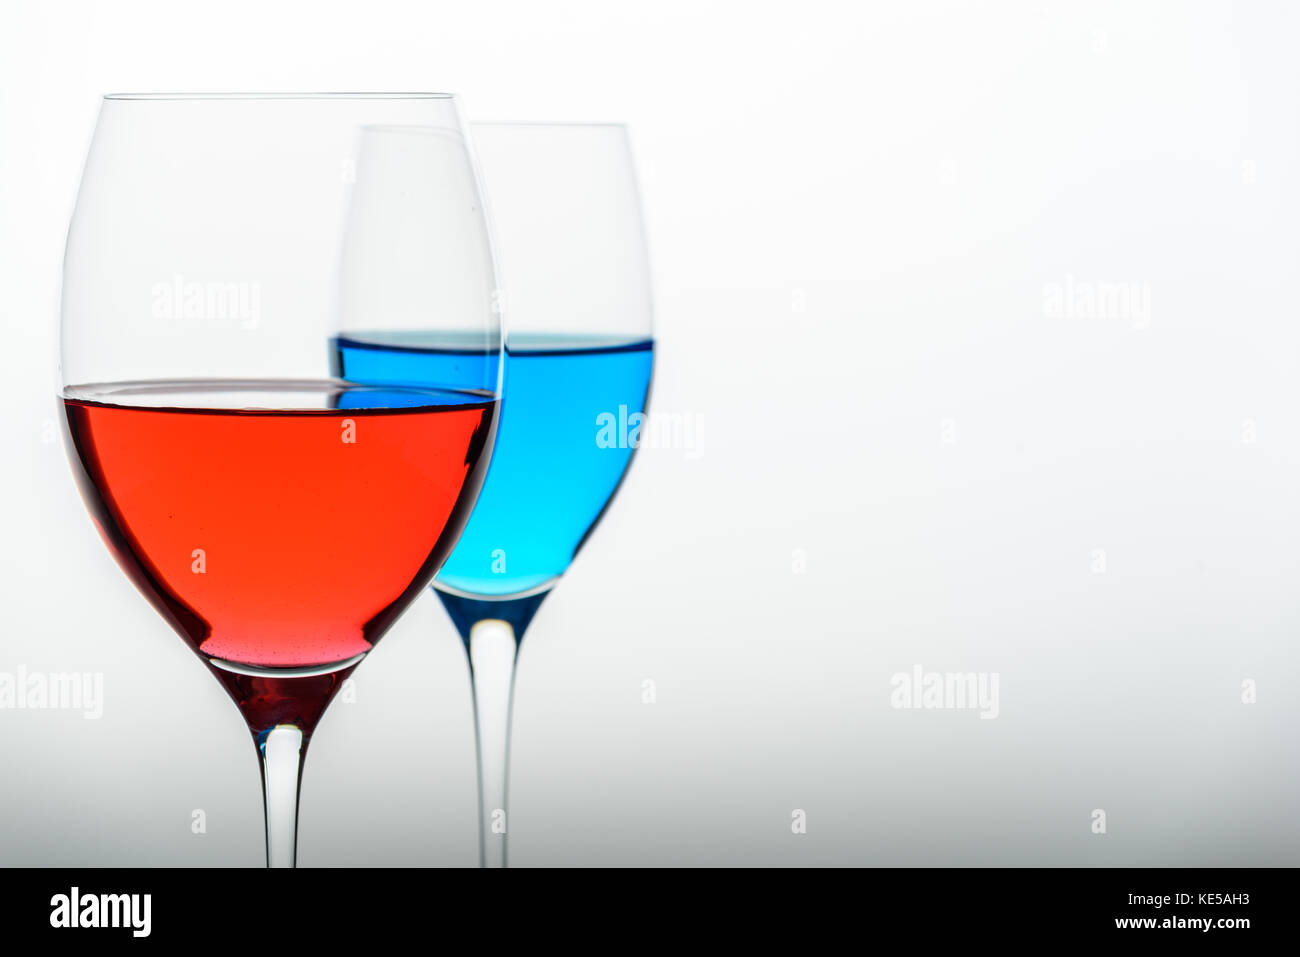 rosecolored glasses and the glass menagerie essay Discussion of themes and motifs in tennessee williams' the glass menagerie enotes critical the glass menagerie themes at a glance quiz, and essay.